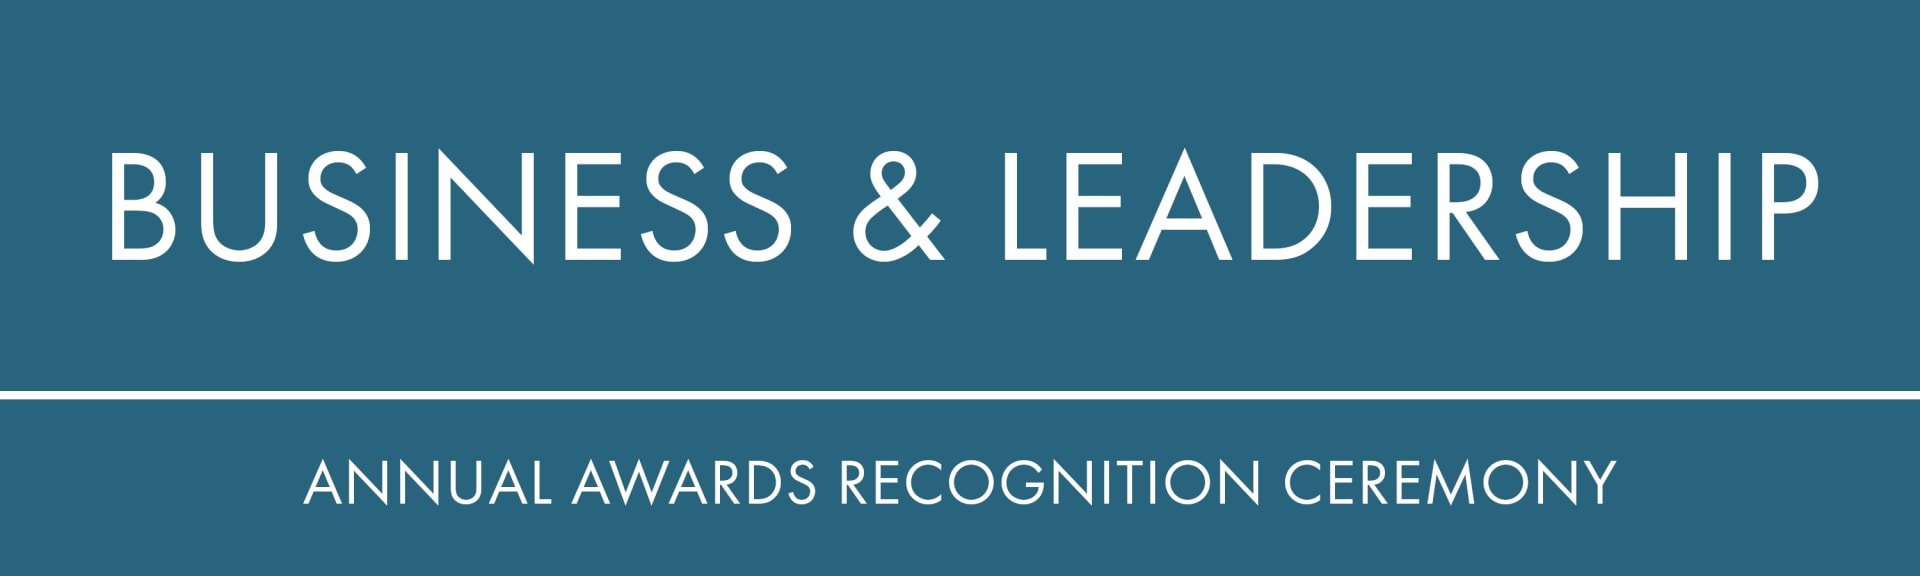 Business and leadership annual awards recognition ceremony greater vancouver chamber of commerce sw washington legacy john mckibbin start-up small business large community champion statesman statesperson economic development